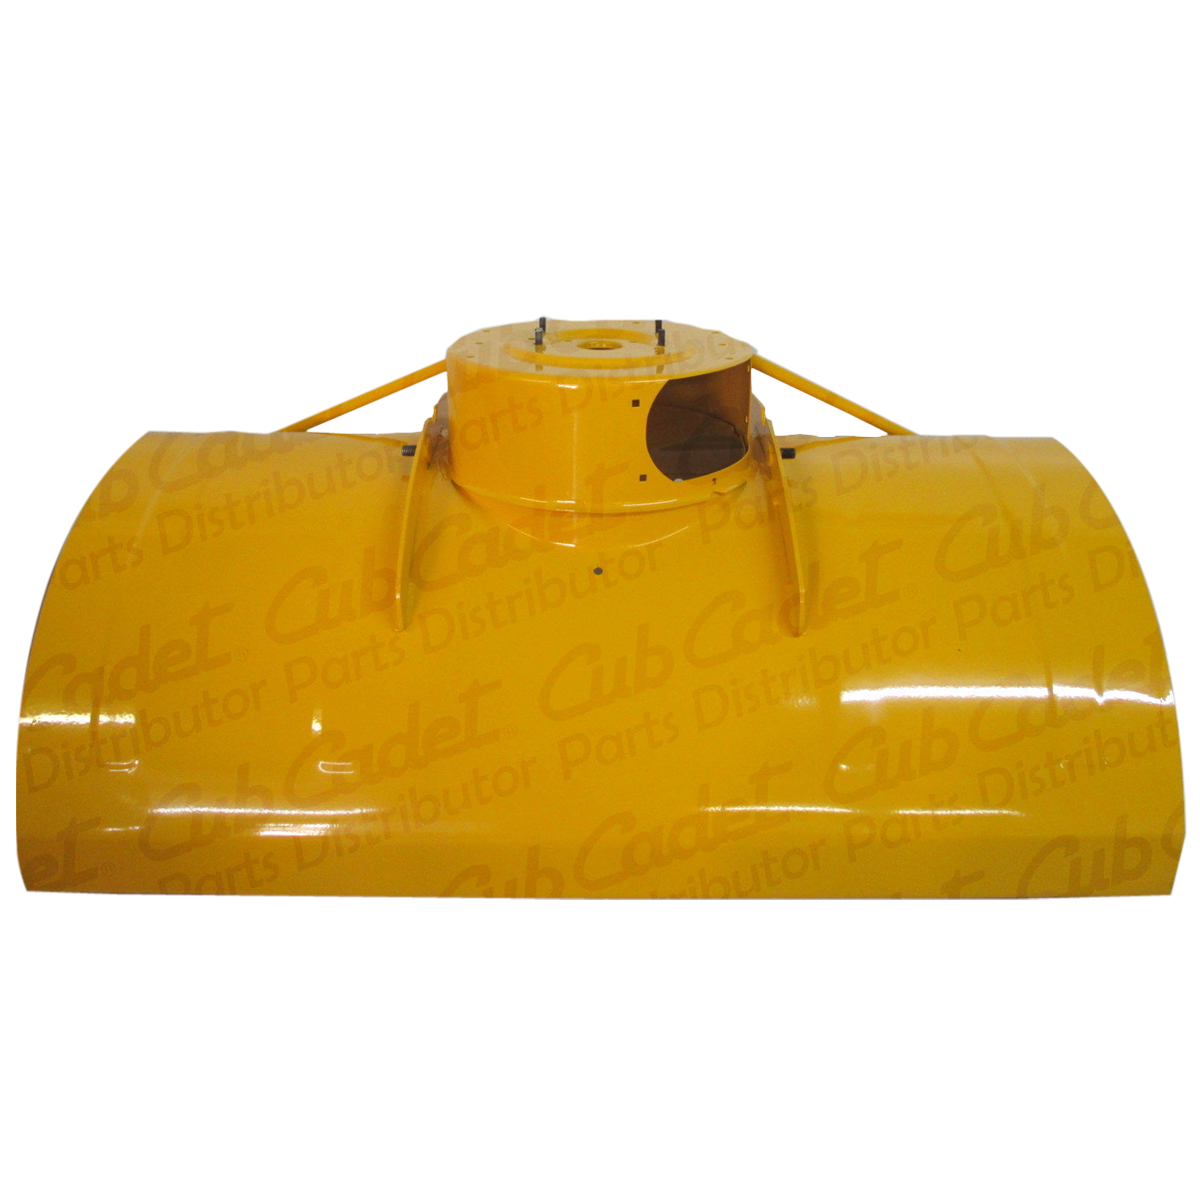 Auger Housing (42 inch) Yellow-99 603-0798-0716